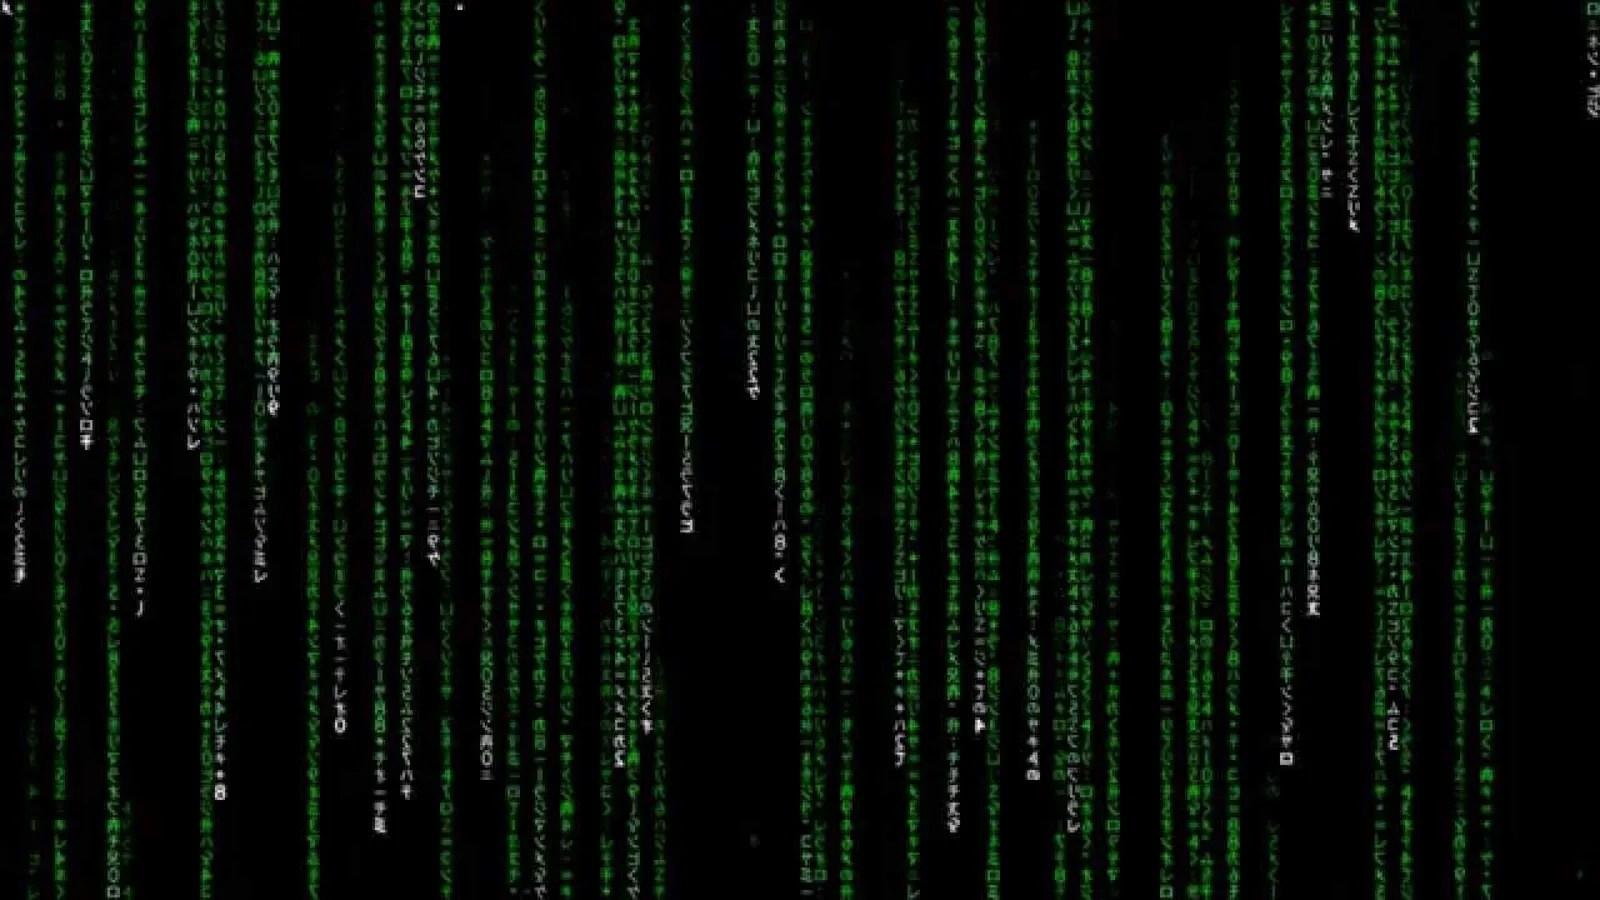 It turns out the Matrix code is actually just a bunch of